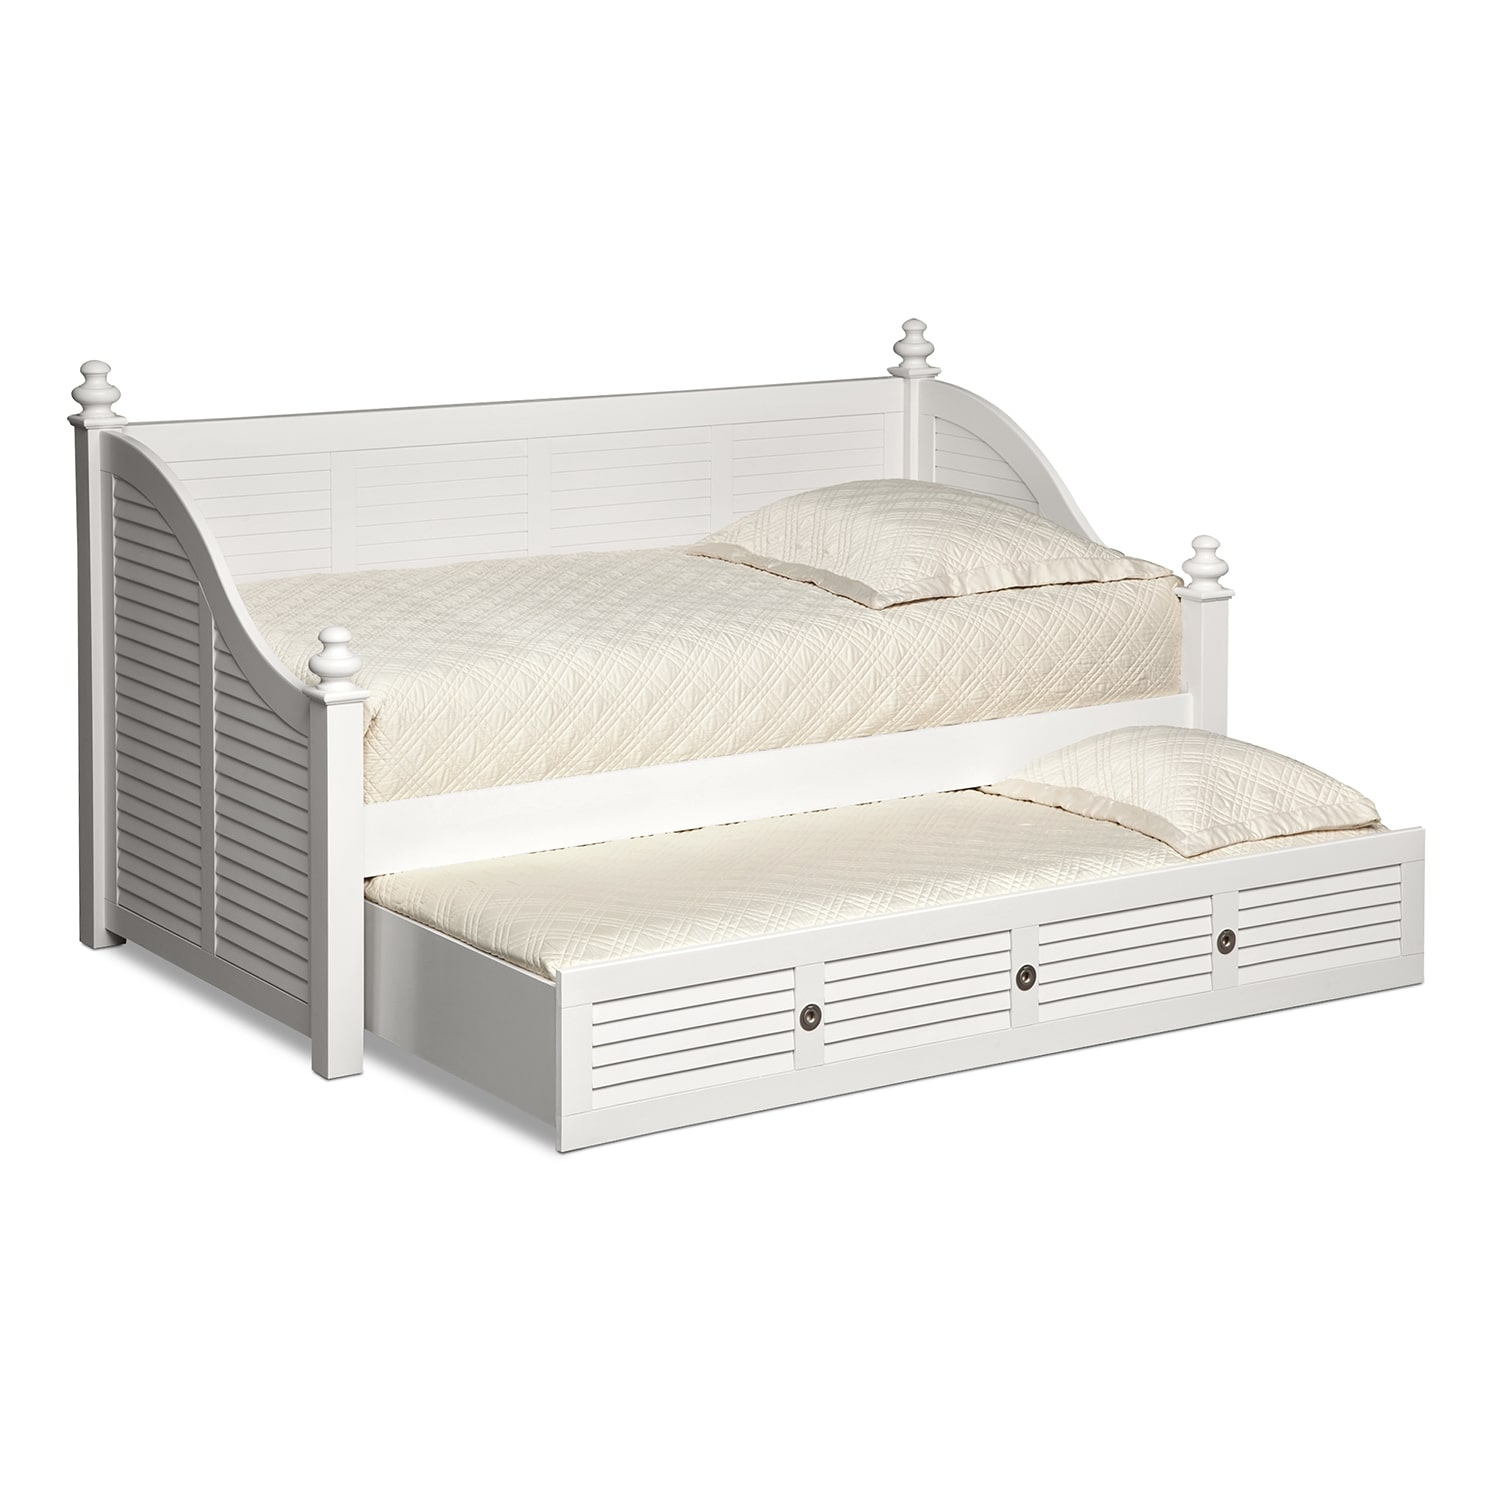 Click to change image. - Seaside Twin Daybed With Trundle - White American Signature